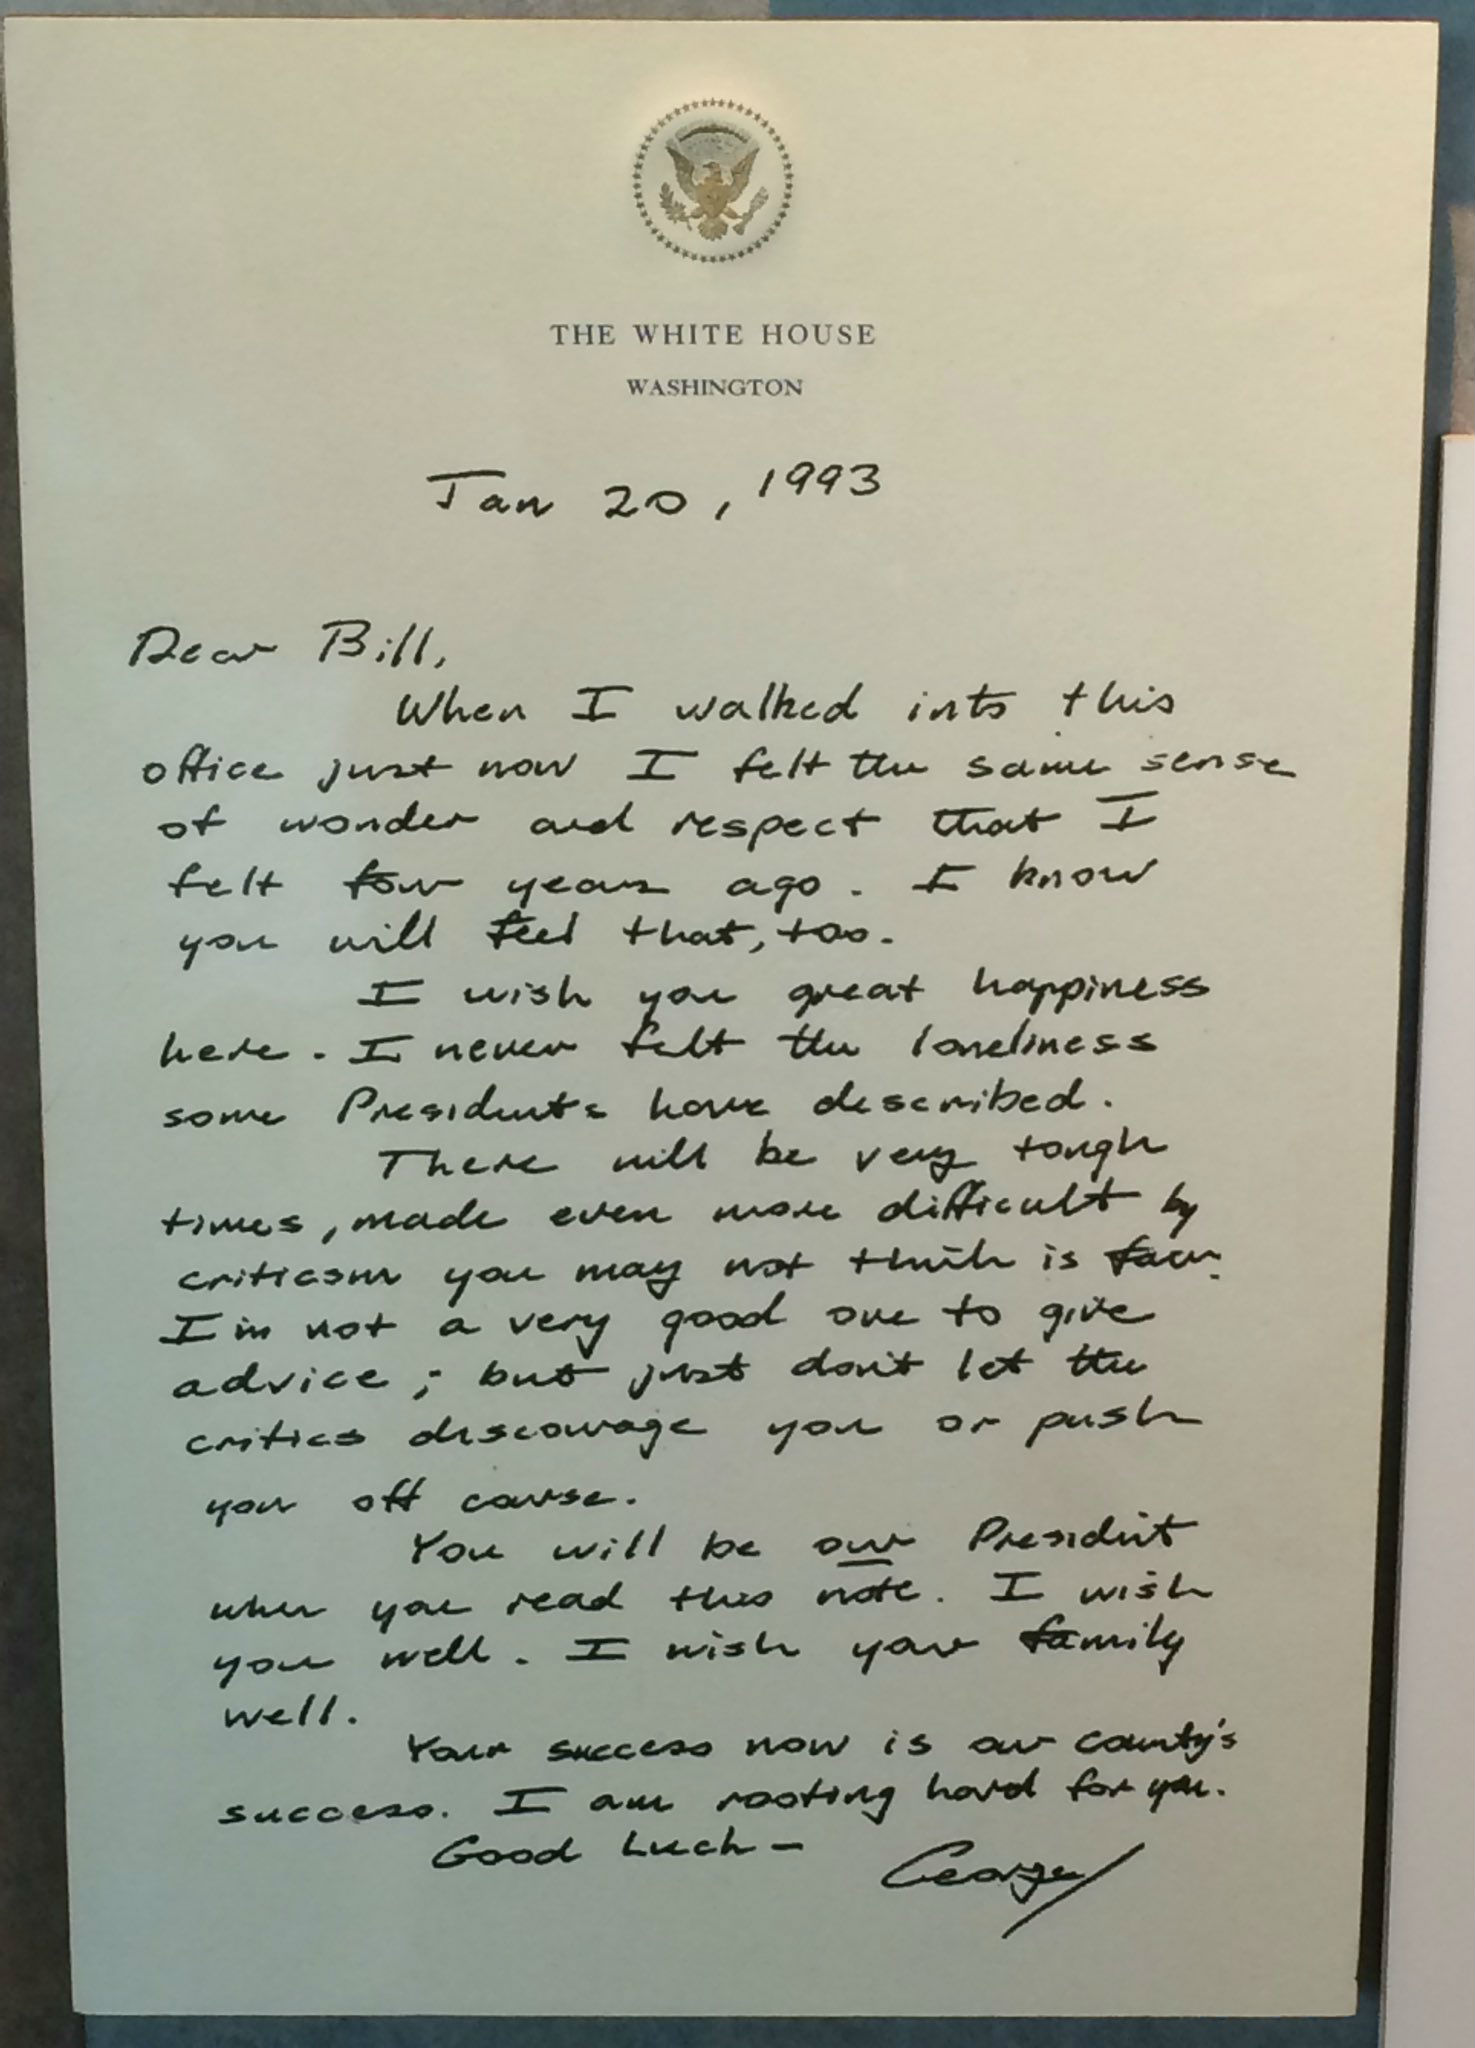 The Thoughtful Note That George H.W. Bush Left on Bill Clinton's